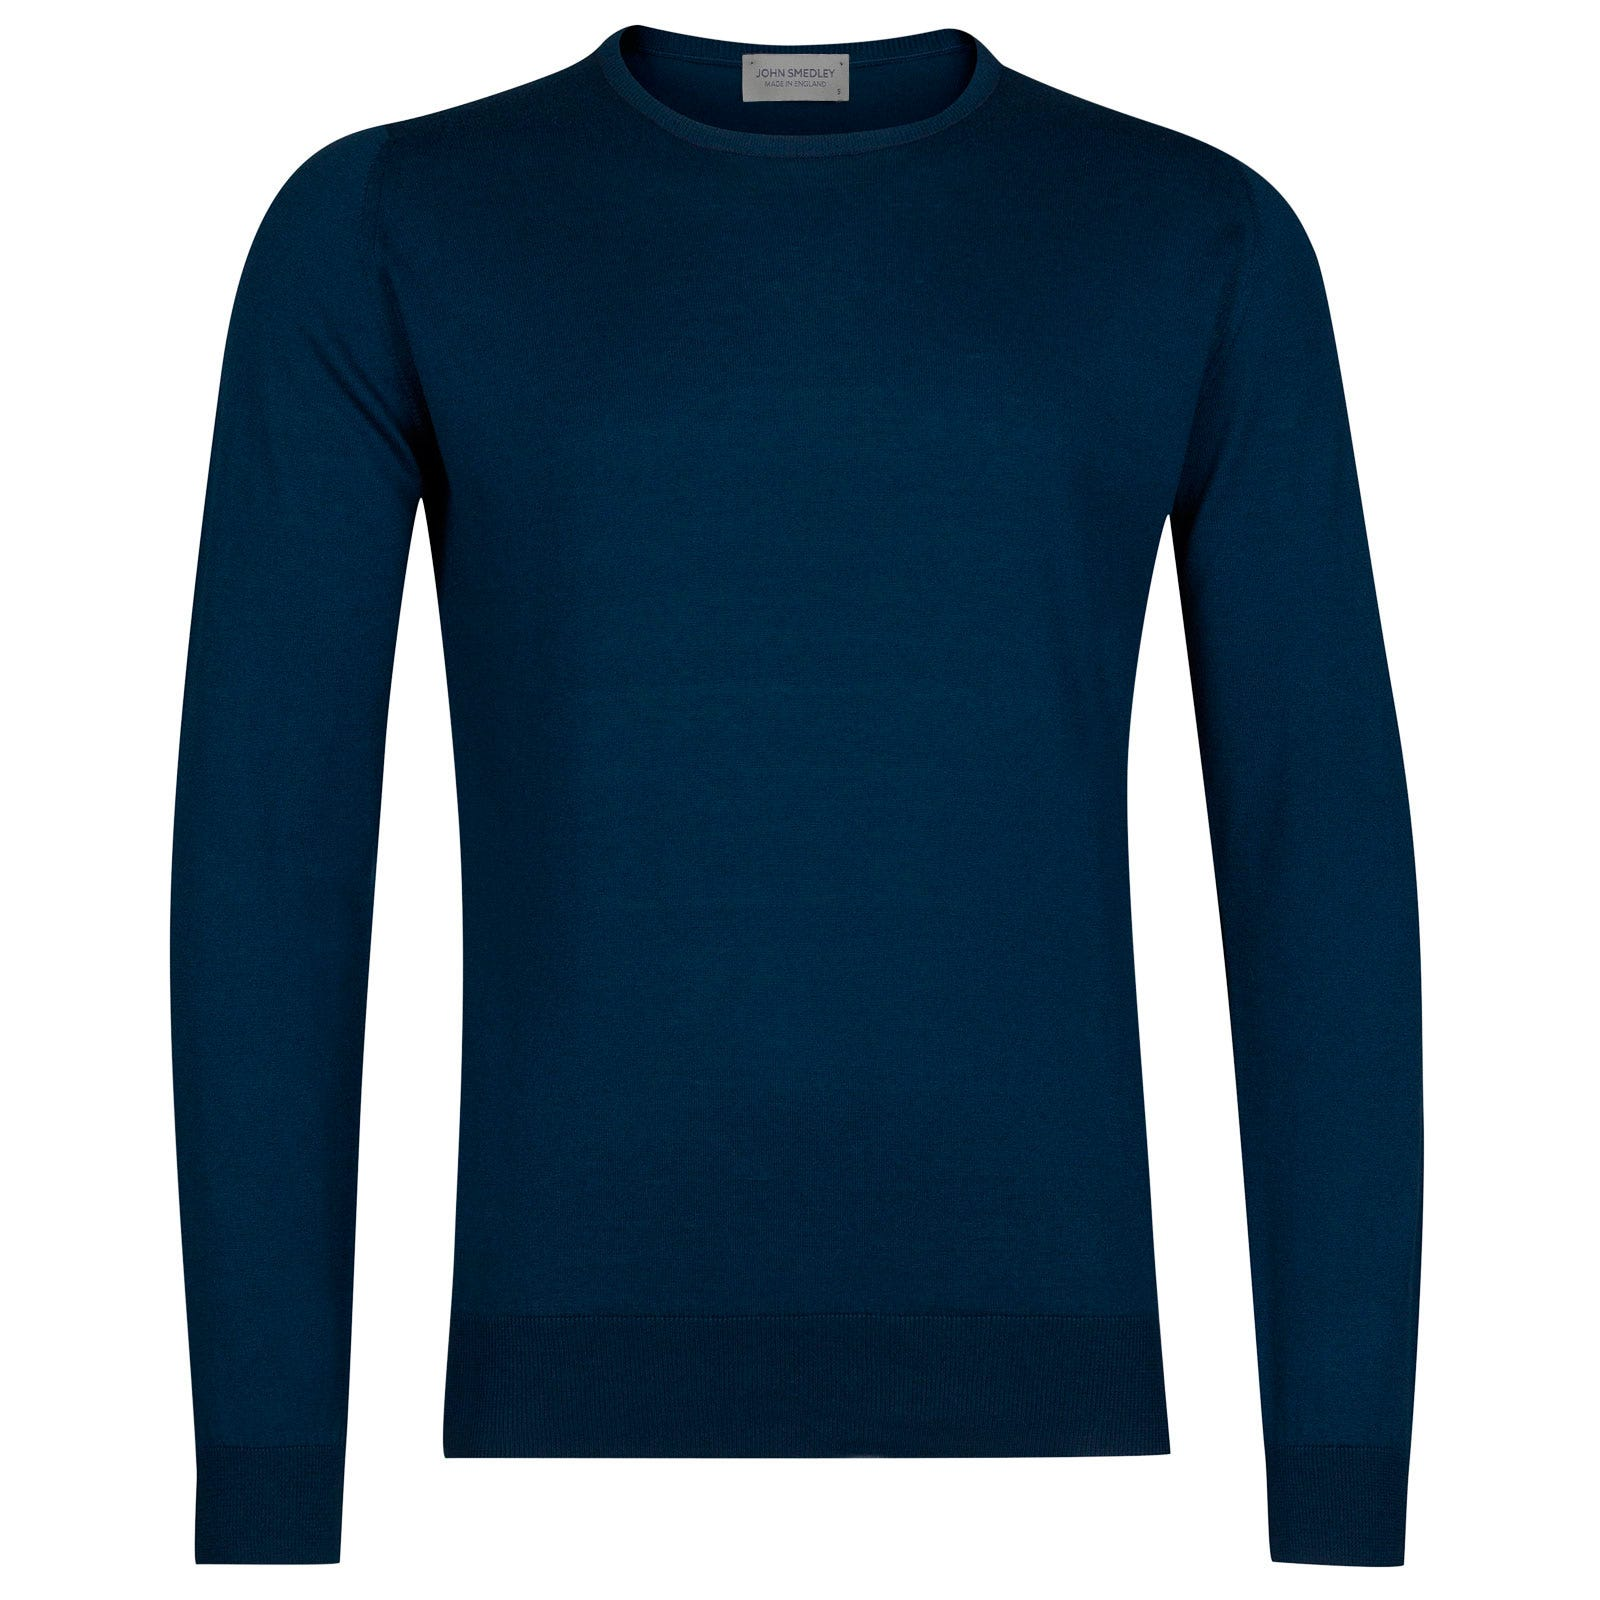 John Smedley hatfield Sea Island Cotton Pullover in Indigo-M